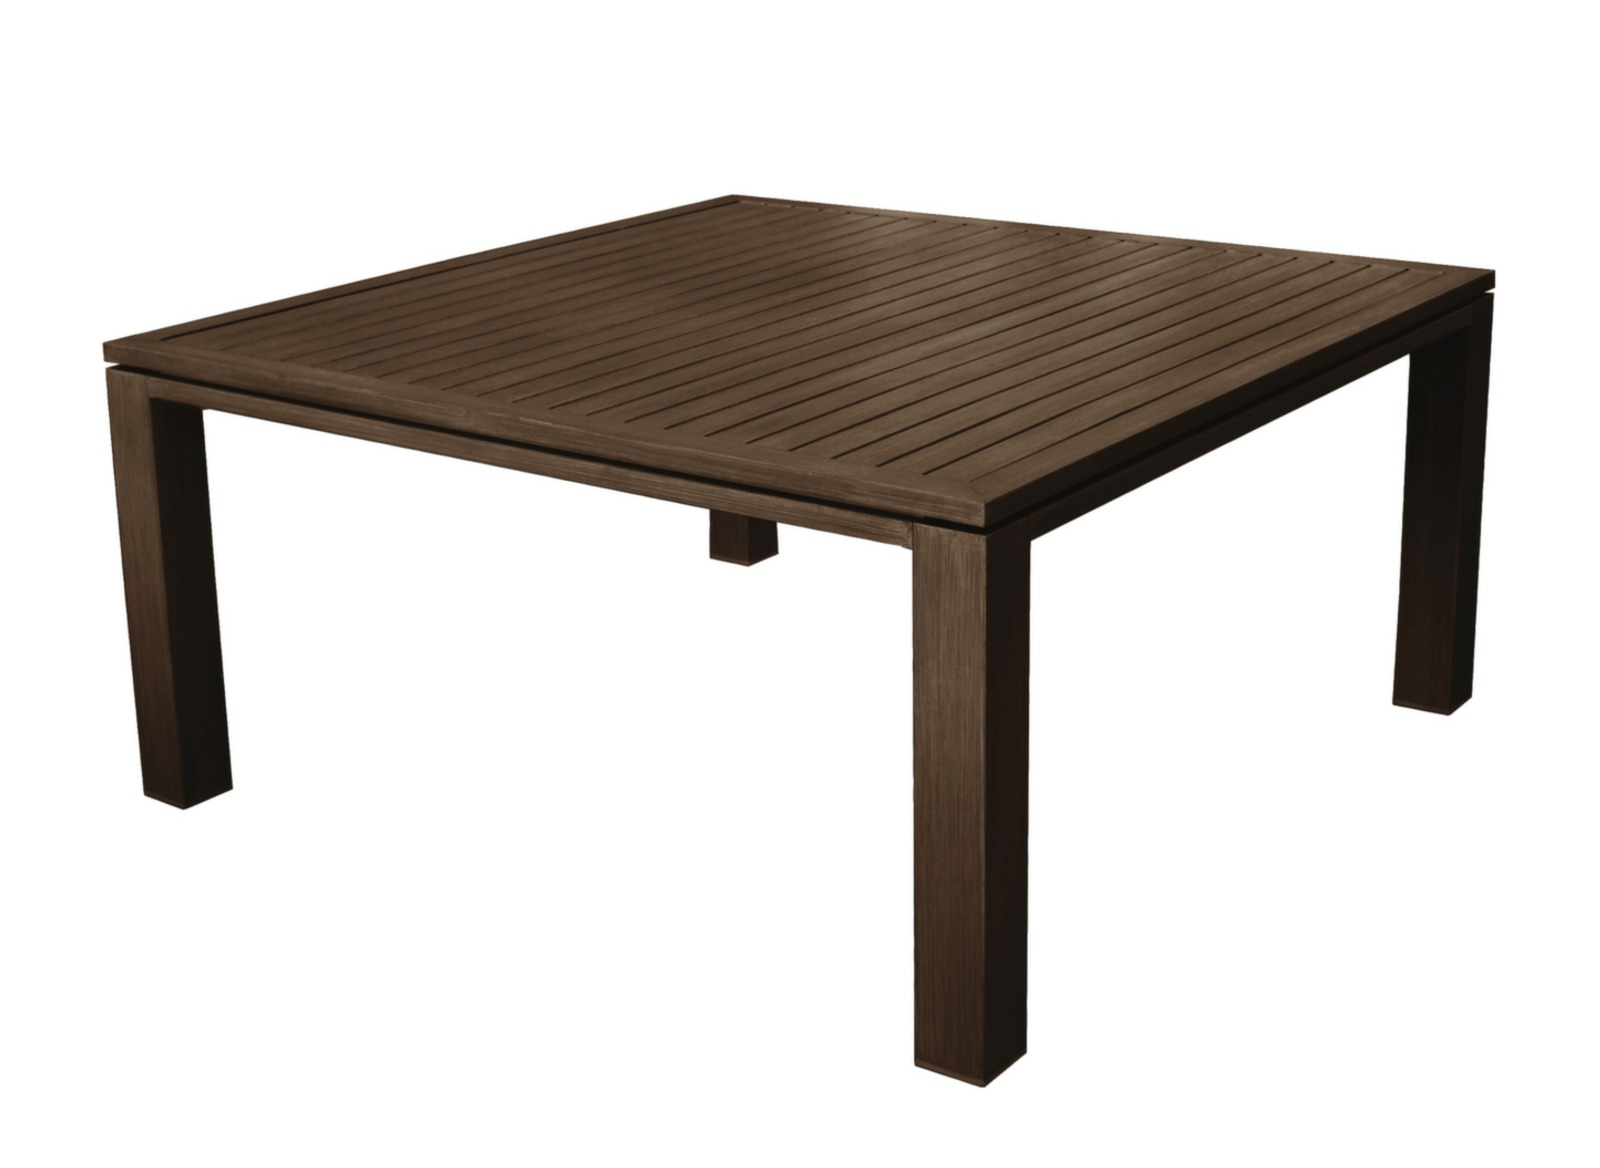 Table de jardin design carr e fiero 160cm proloisirs - Table de jardin design ...